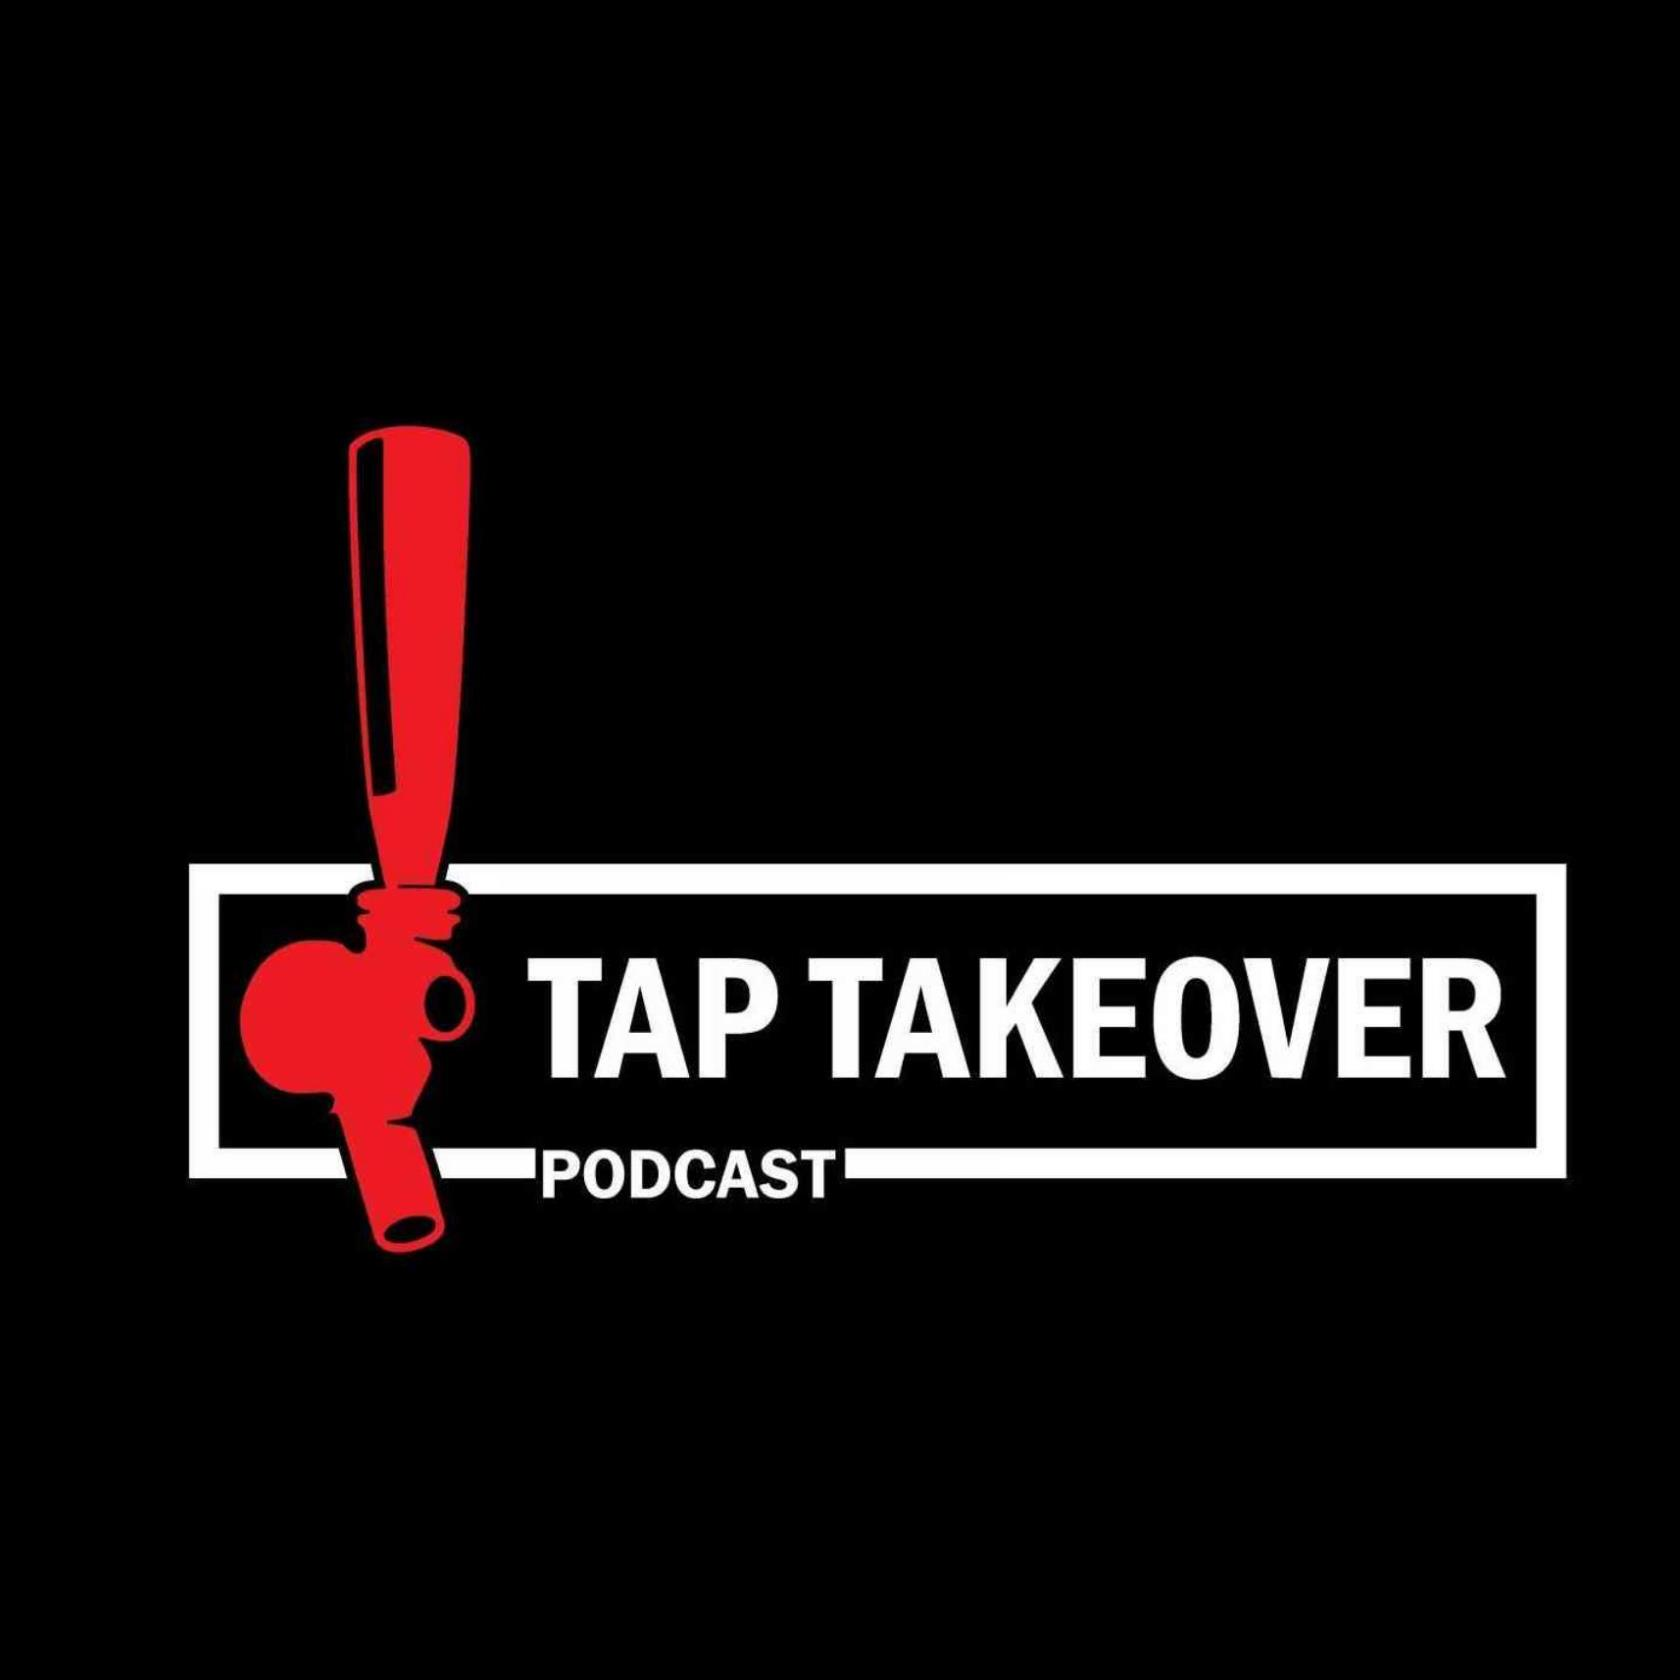 Tap Takeover Podcast